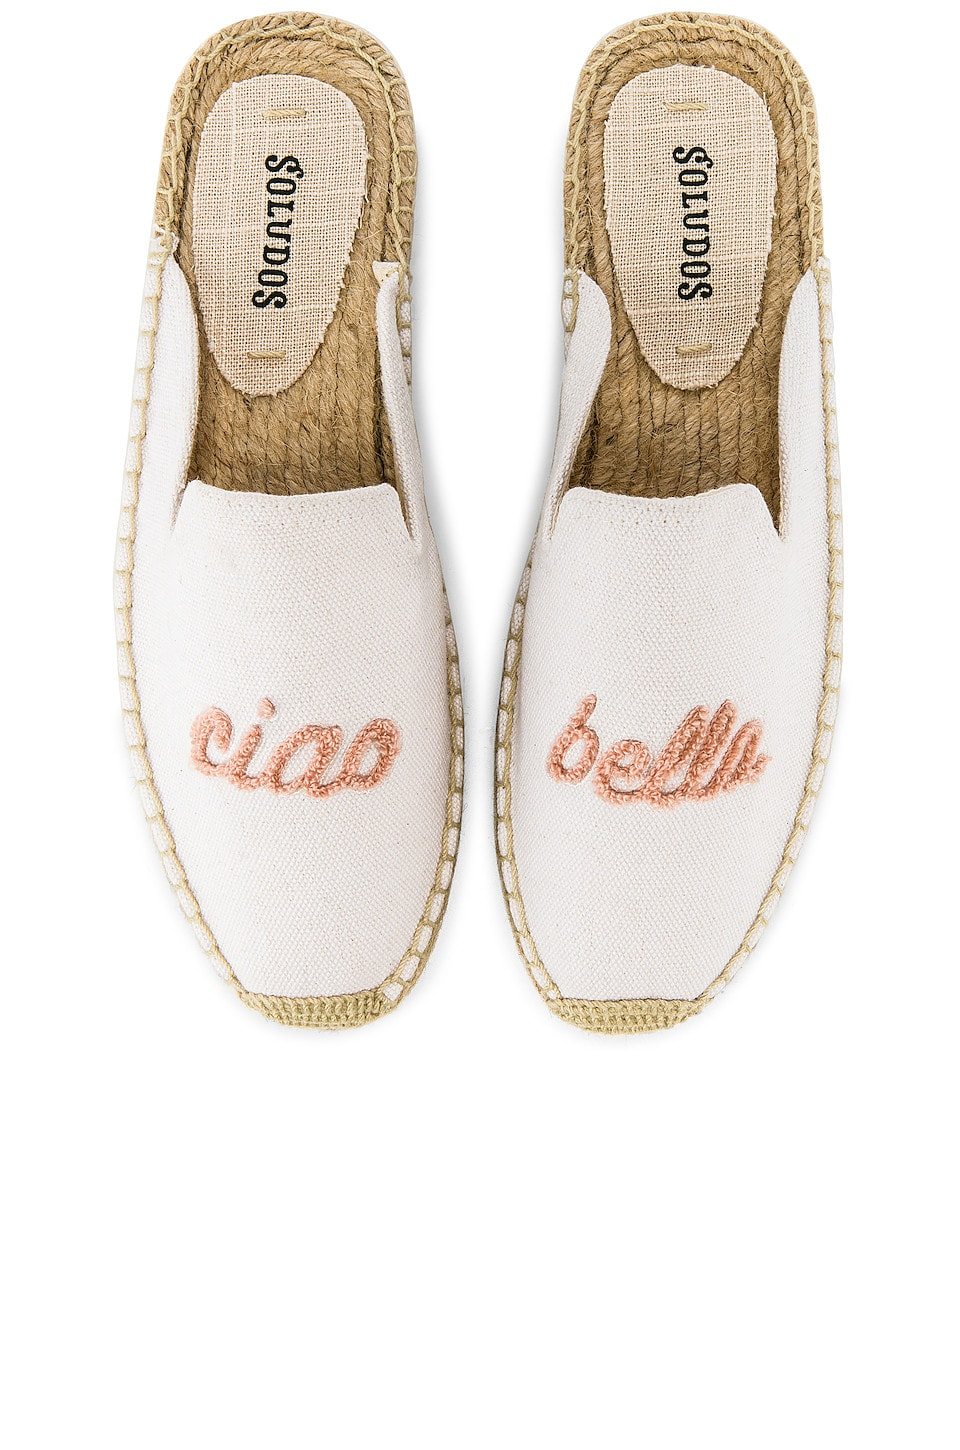 Soludos Ciao Bella Mule in White